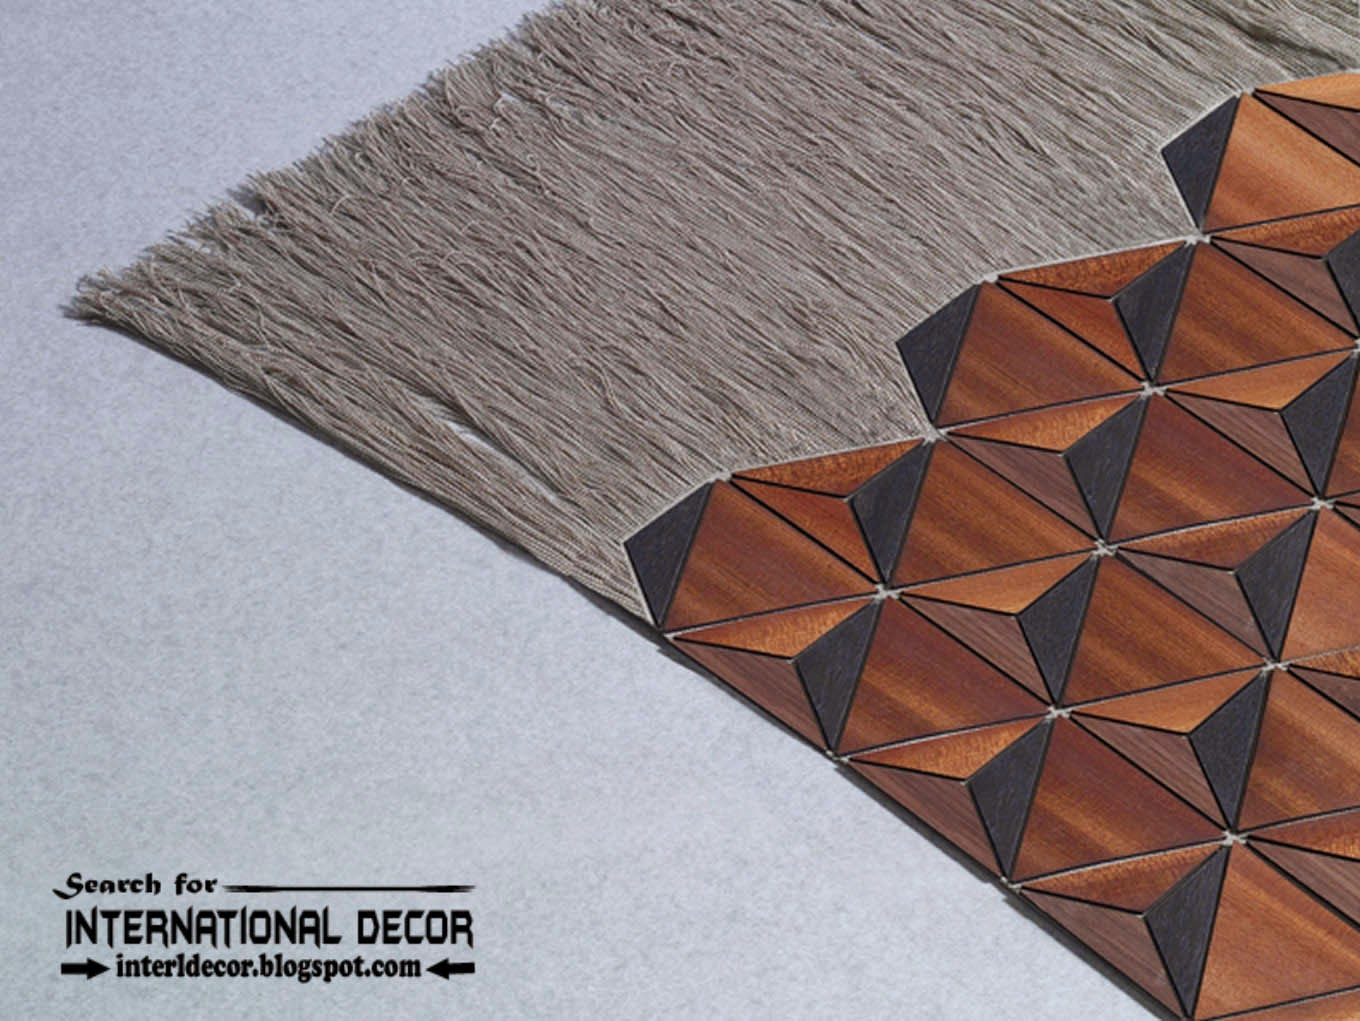 New collection of Eco-friendly wooden carpet and rugs with fringe